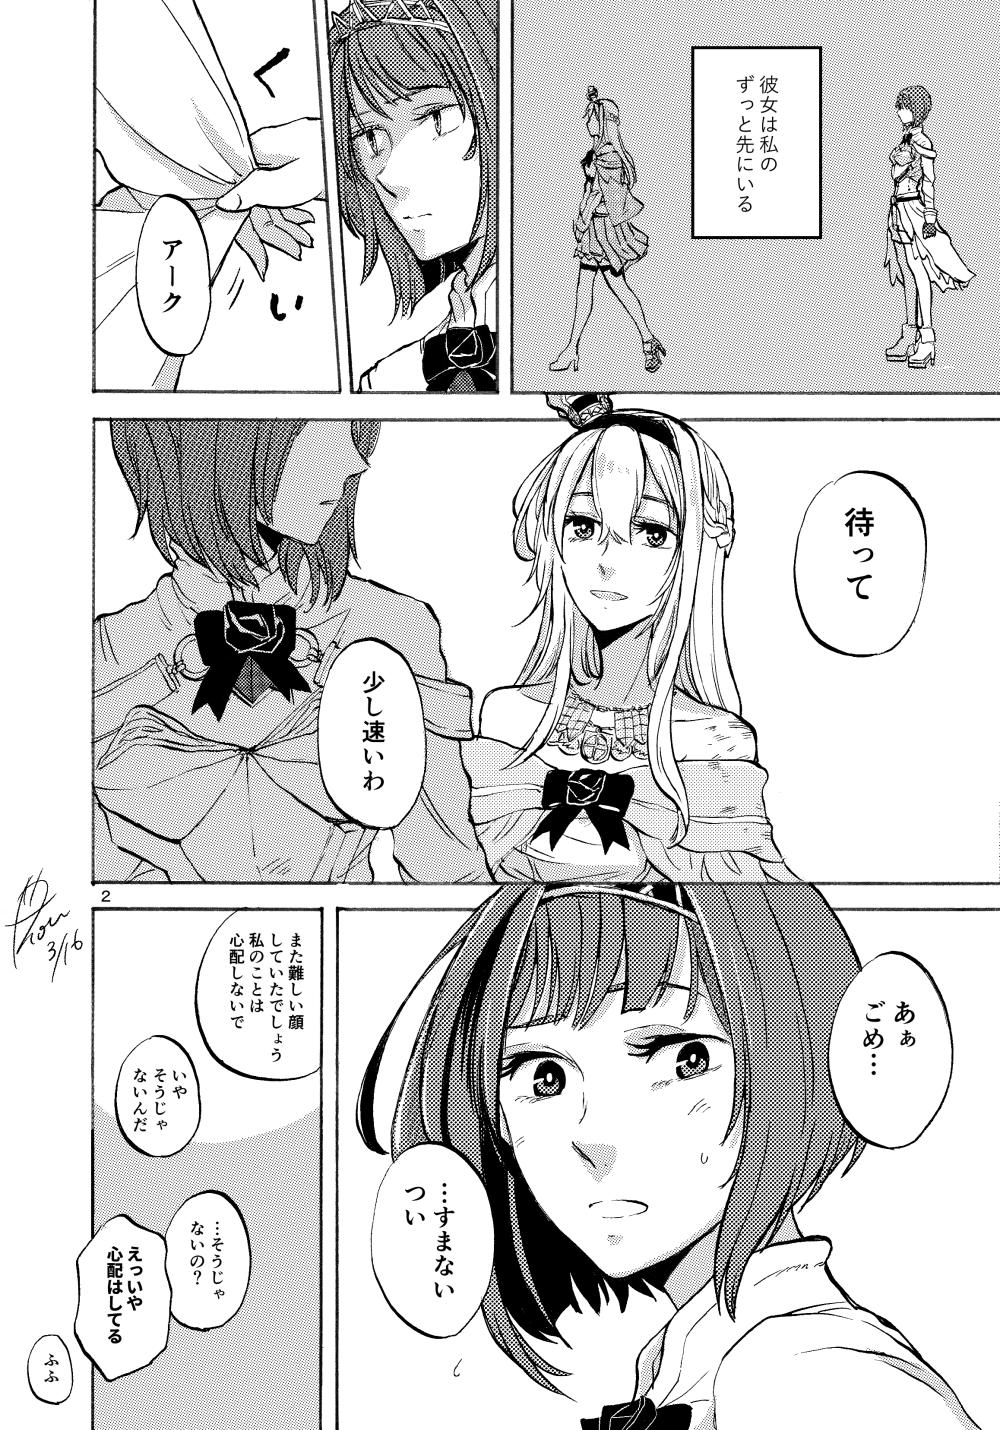 2girls ark_royal_(kantai_collection) bangs bare_shoulders belt blunt_bangs blush bob_cut braid breasts closed_mouth clothes_grab collarbone comic crown dated dirty dress eyebrows_visible_through_hair fingerless_gloves flower flying_sweatdrops french_braid frilled_skirt frills gloves greyscale hair_between_eyes hair_ornament hairband high_heels highres kantai_collection long_hair long_sleeves mini_crown monochrome multiple_girls off-shoulder_dress off_shoulder overskirt parted_lips pleated_skirt ribbon rose shaded_face short_hair shorts signature skirt smile speech_bubble sweat thigh-highs tiara translation_request walking warspite_(kantai_collection) yamada_rei_(rou)